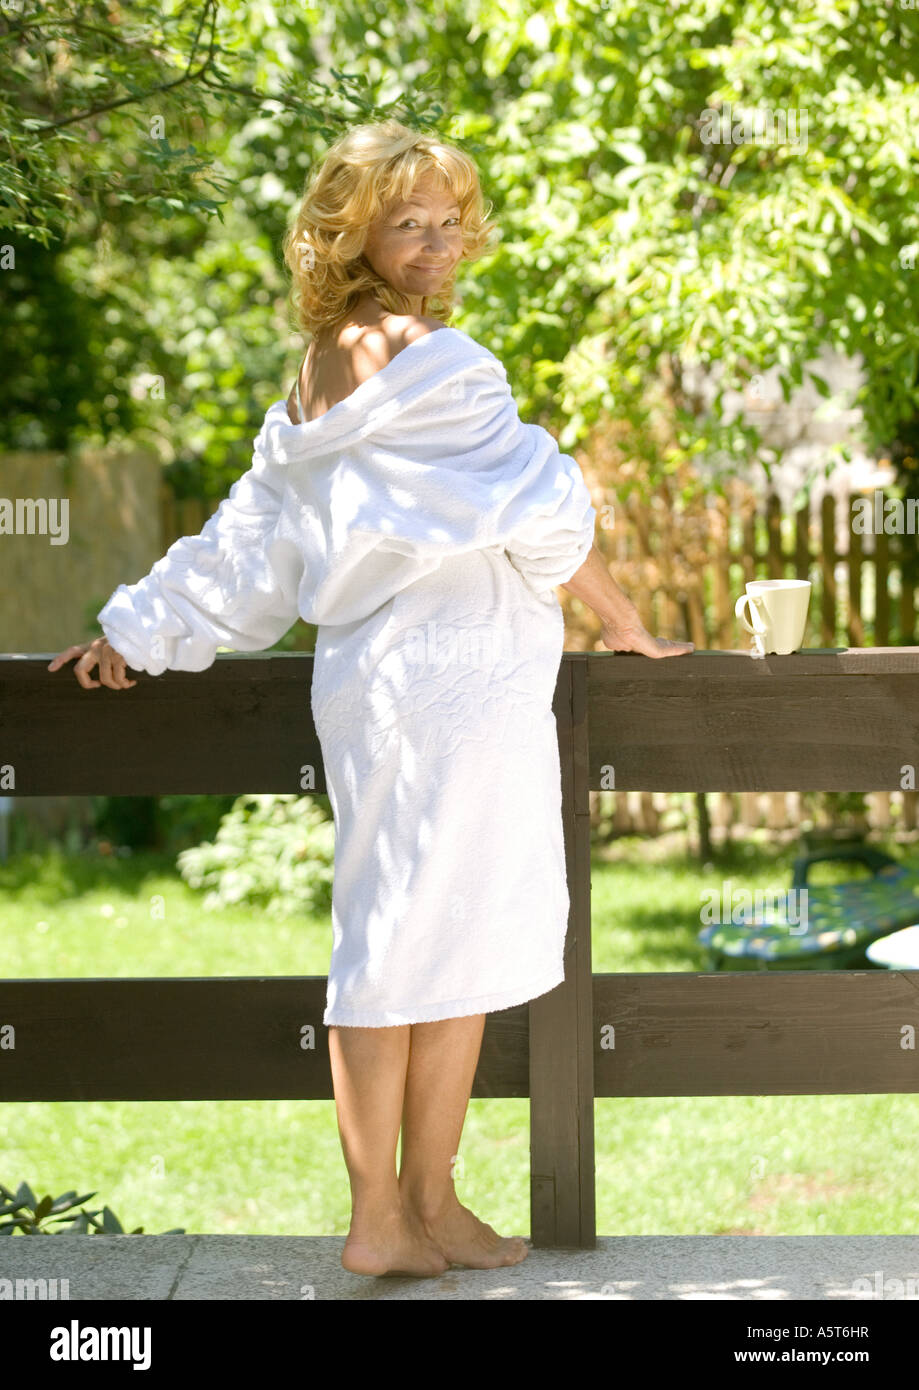 Senior woman in bathrobe, standing outdoors with robe falling off shoulders - Stock Image